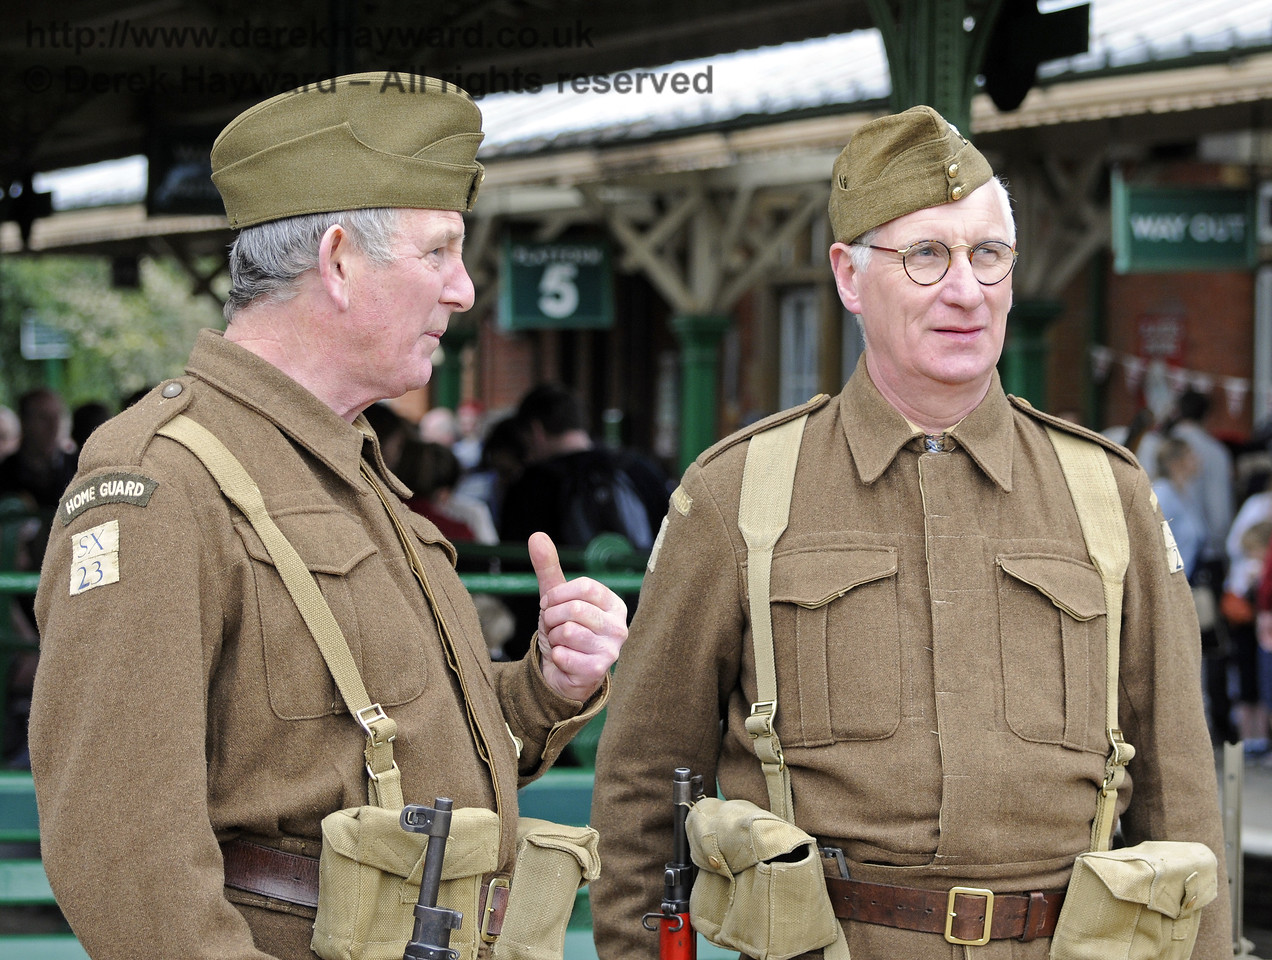 Southern at War, Horsted Keynes 13.05.2012  8051